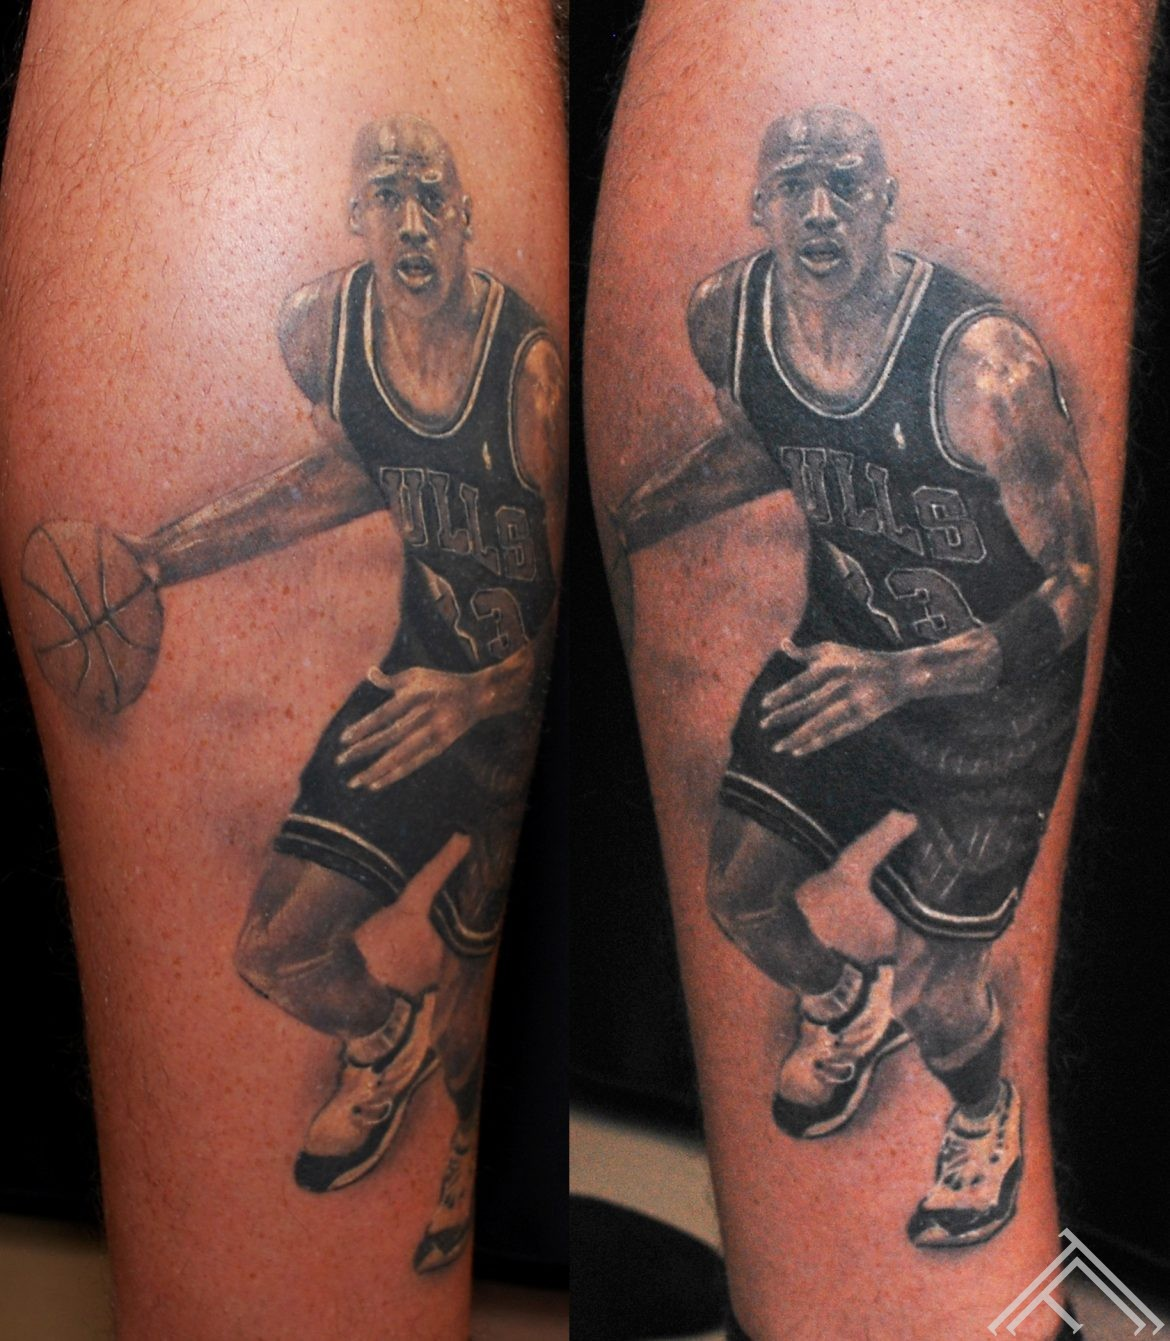 michael_jordan_michaeljordan_basketball_tattoo_frequency_tattoofrequency_marispavlo_tattoosaloon_riga